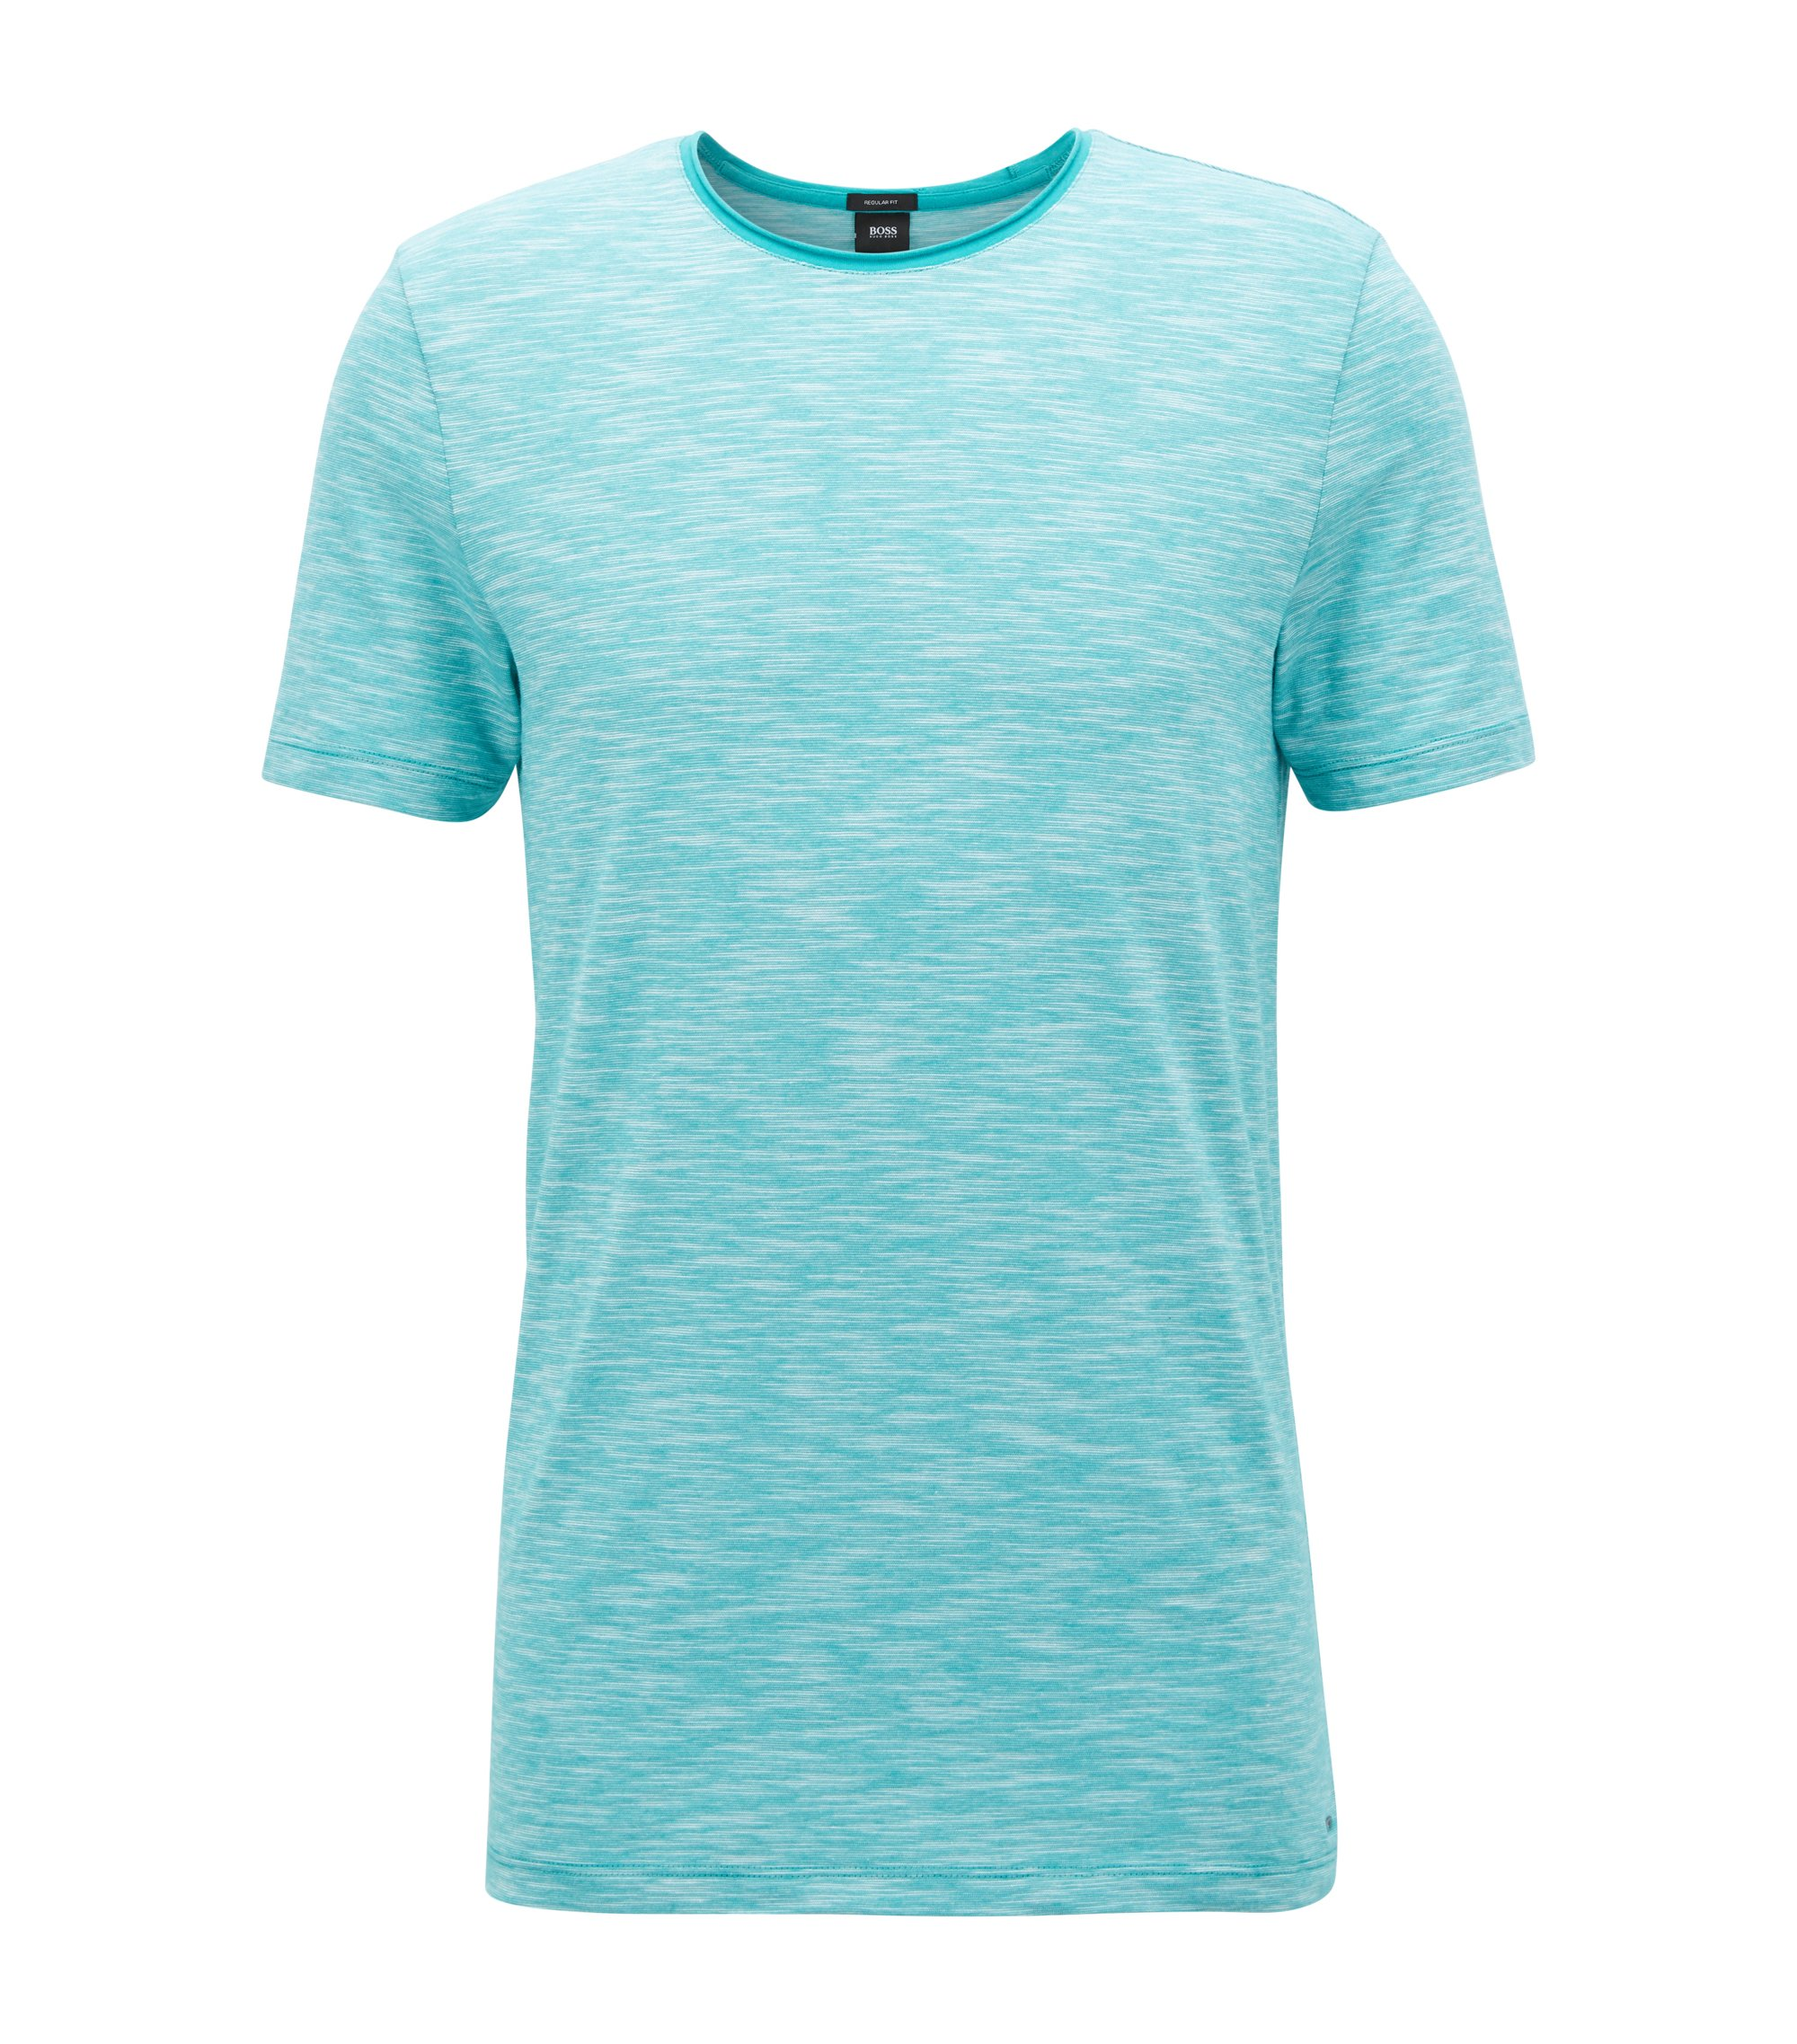 Mouliné T-shirt with raw-cut crew neckline, Green